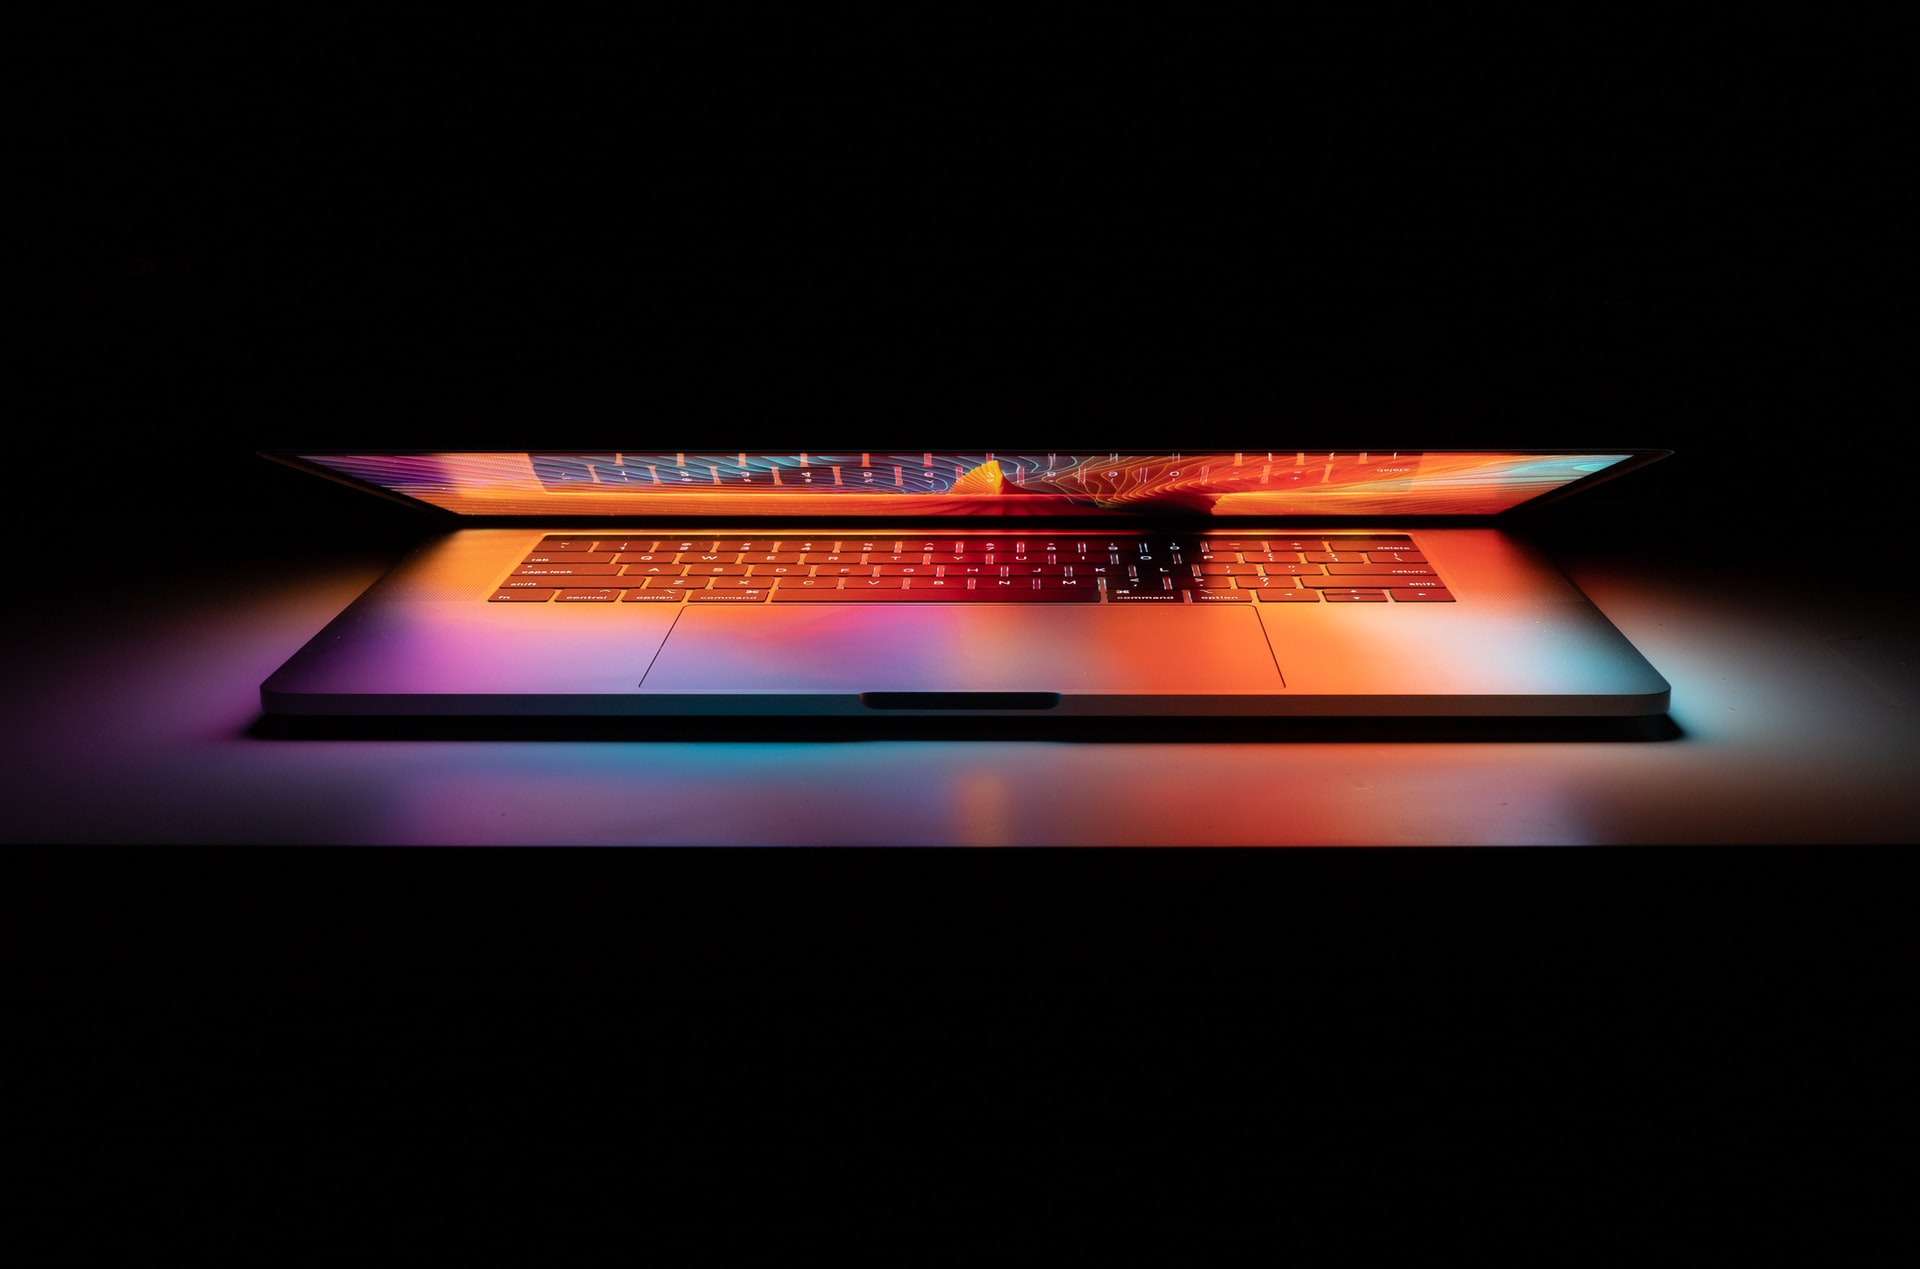 Start Using Your MacBook: 5 Helpful Tips